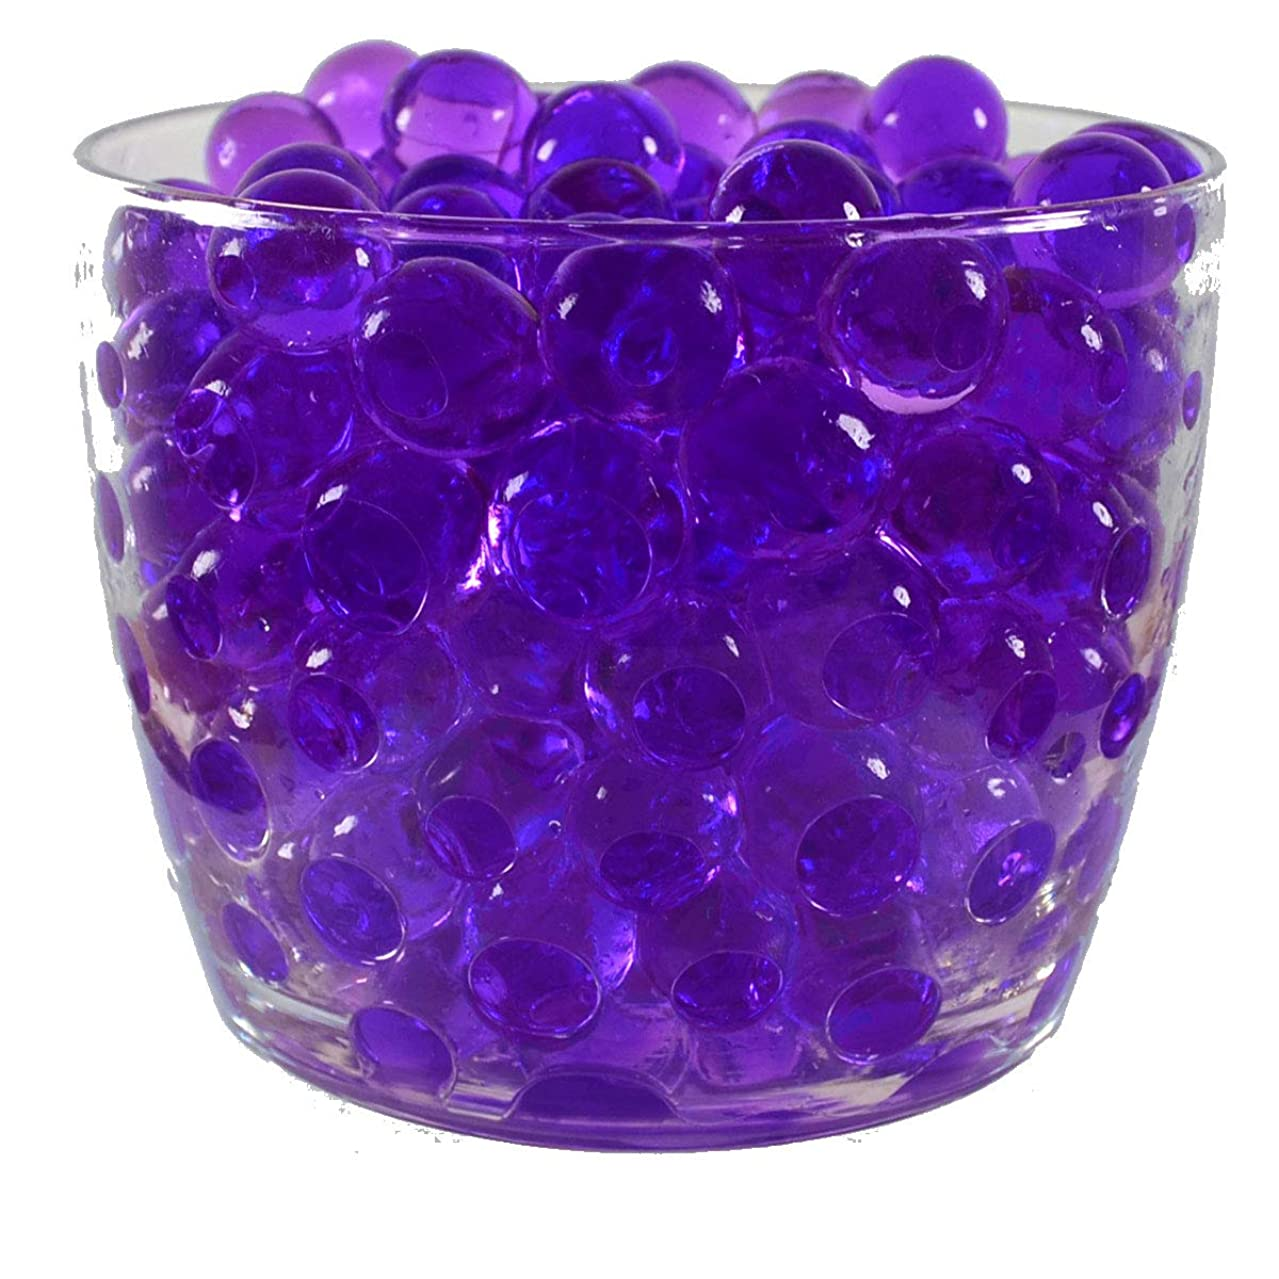 Water Pearls Gel Beads- Wedding & Event Centerpieces- Cosmo Beads (Tm)-makes 6 Gallons (8 Oz Pack) (Purple)